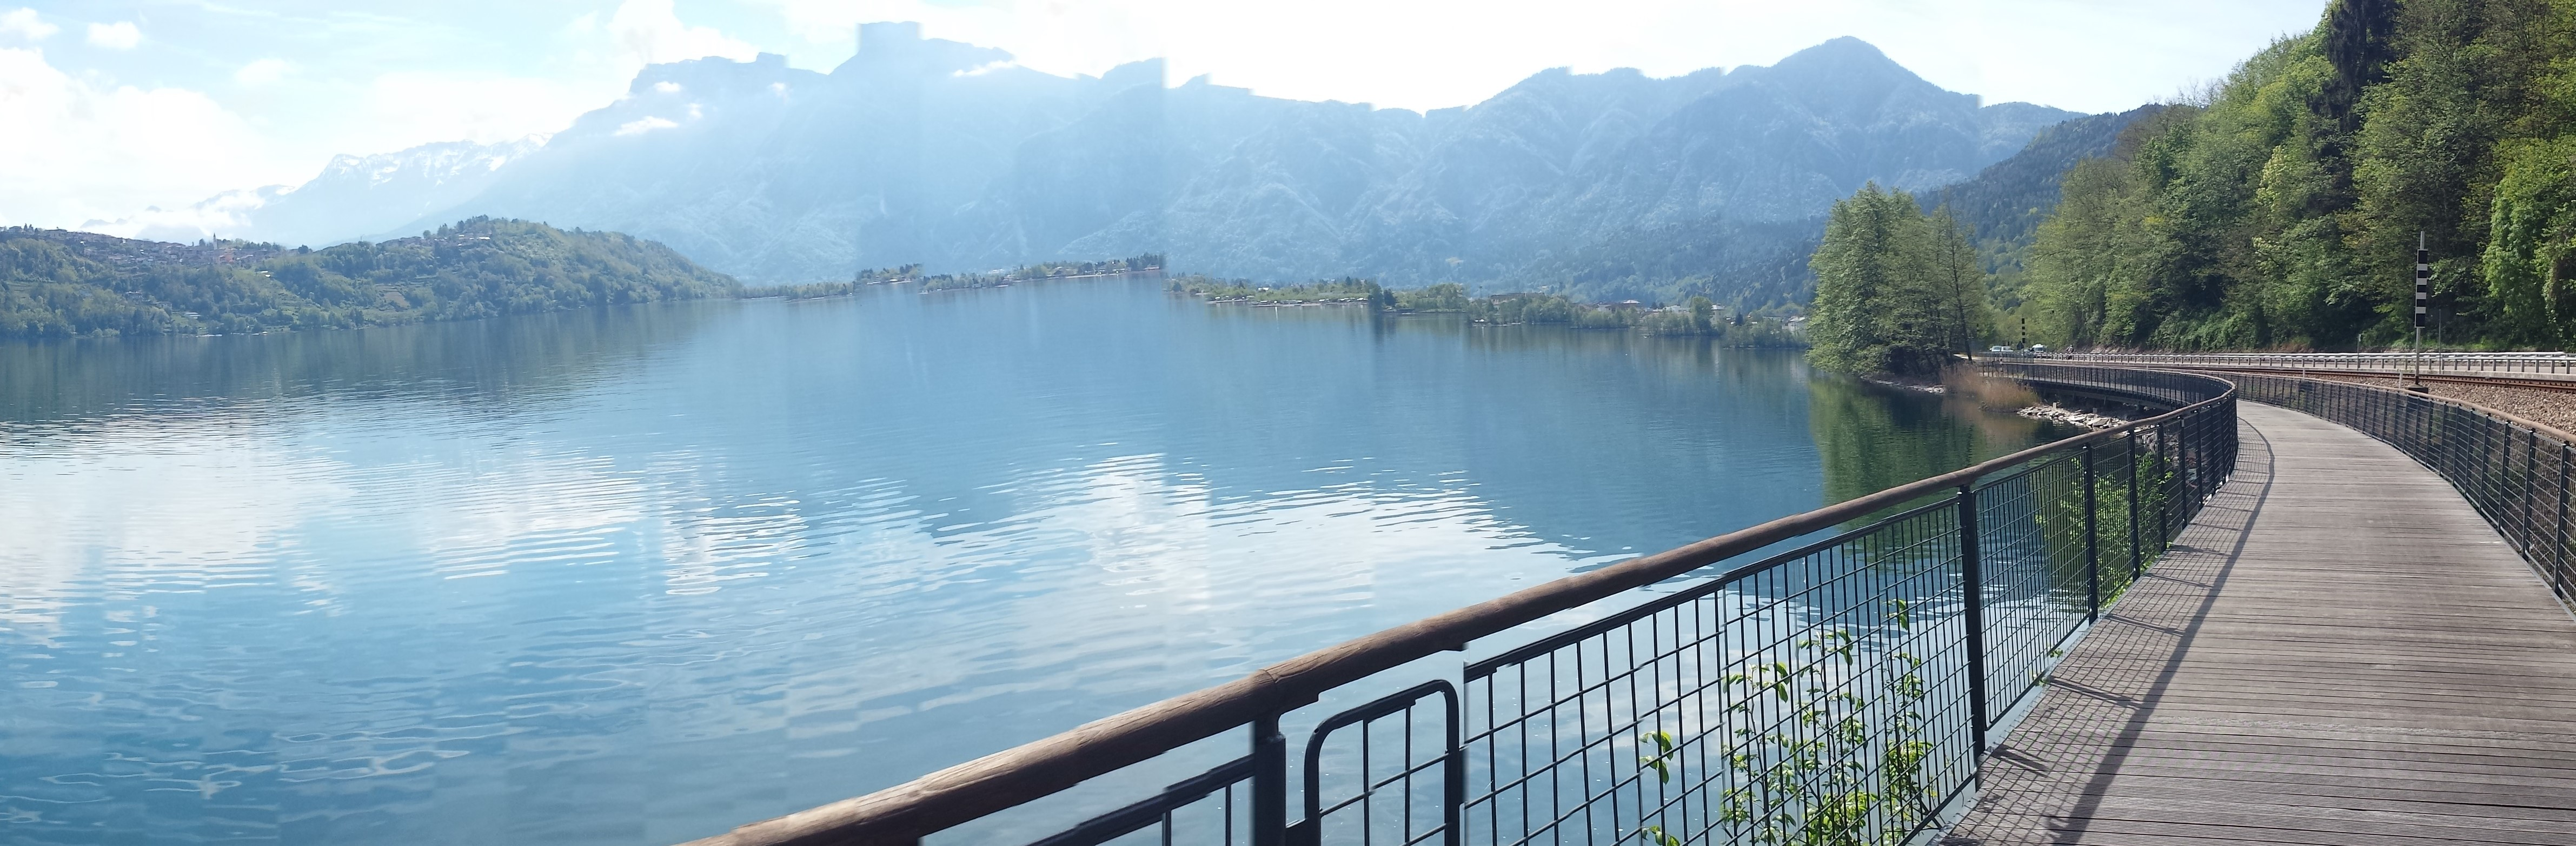 slow tourism in italy, Lake Levico cycle path